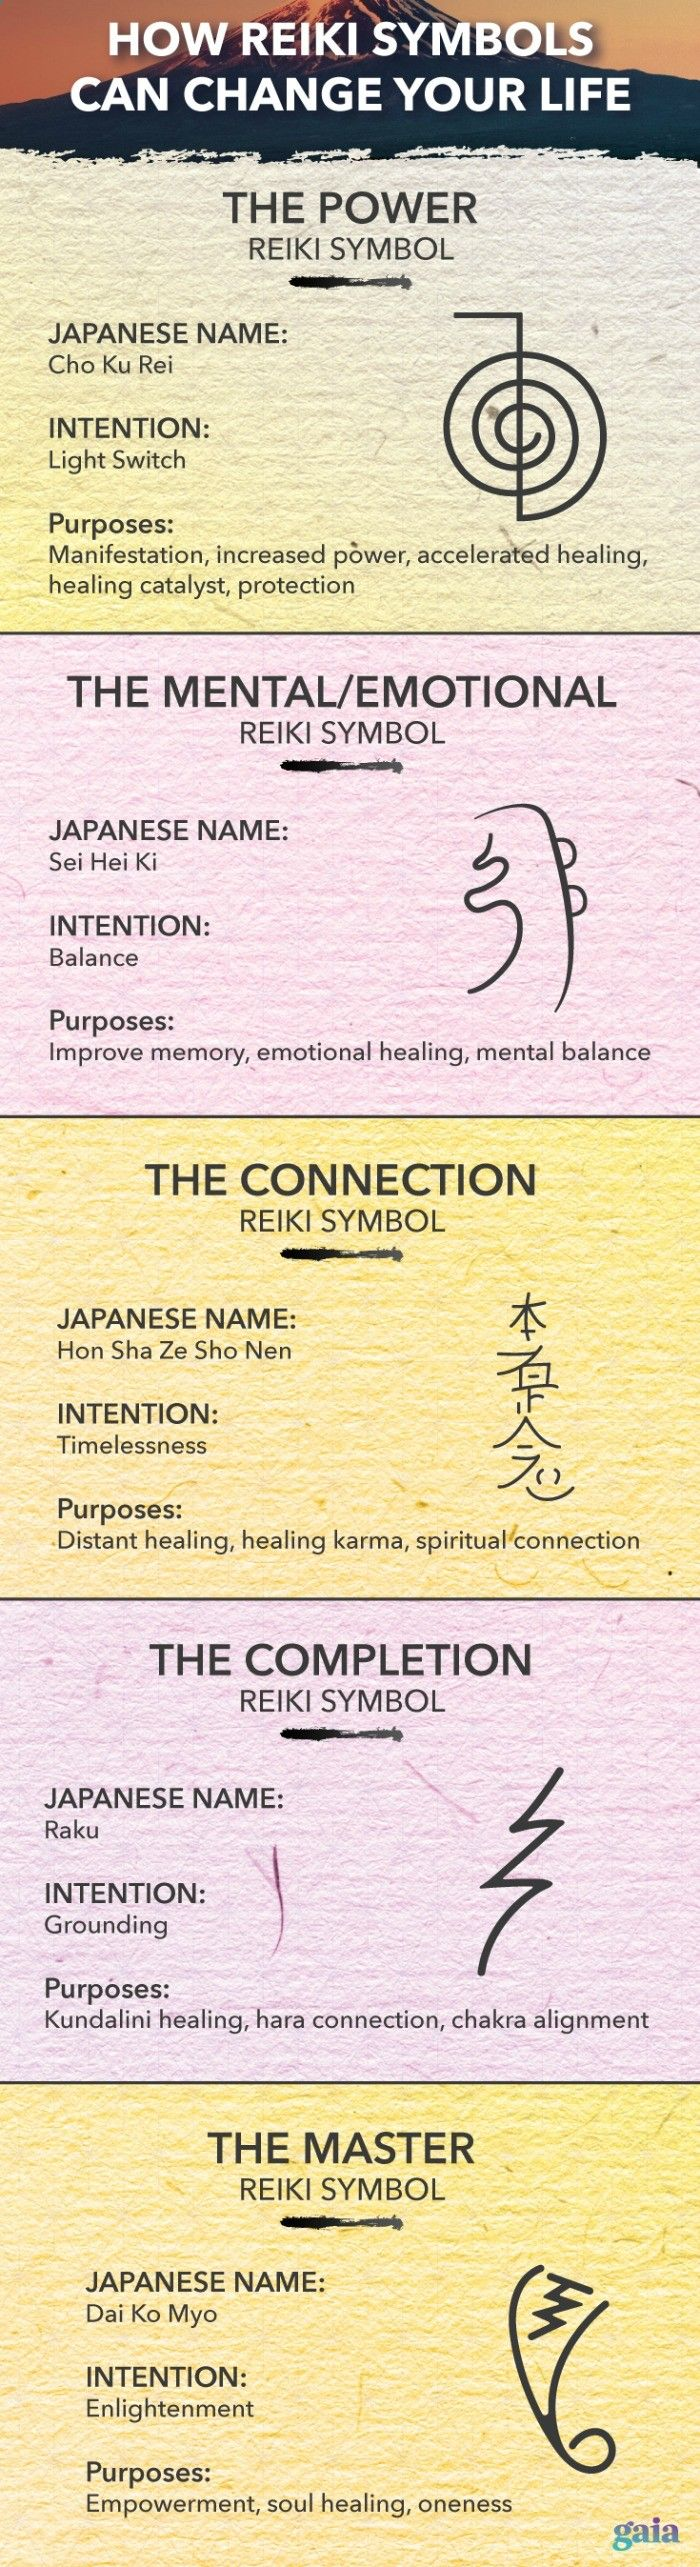 Reiki - How Reiki Symbols Can Change Your Life: the five Reiki symbols you should know if you're ready to take your spiritual journey to the next level. - Amazing Secret Discovered by Middle-Aged Construction Worker Releases Healing Energy Through The Palm of His Hands... Cures Diseases and Ailments Just By Touching Them... And Even Heals People Over Vast Distances...